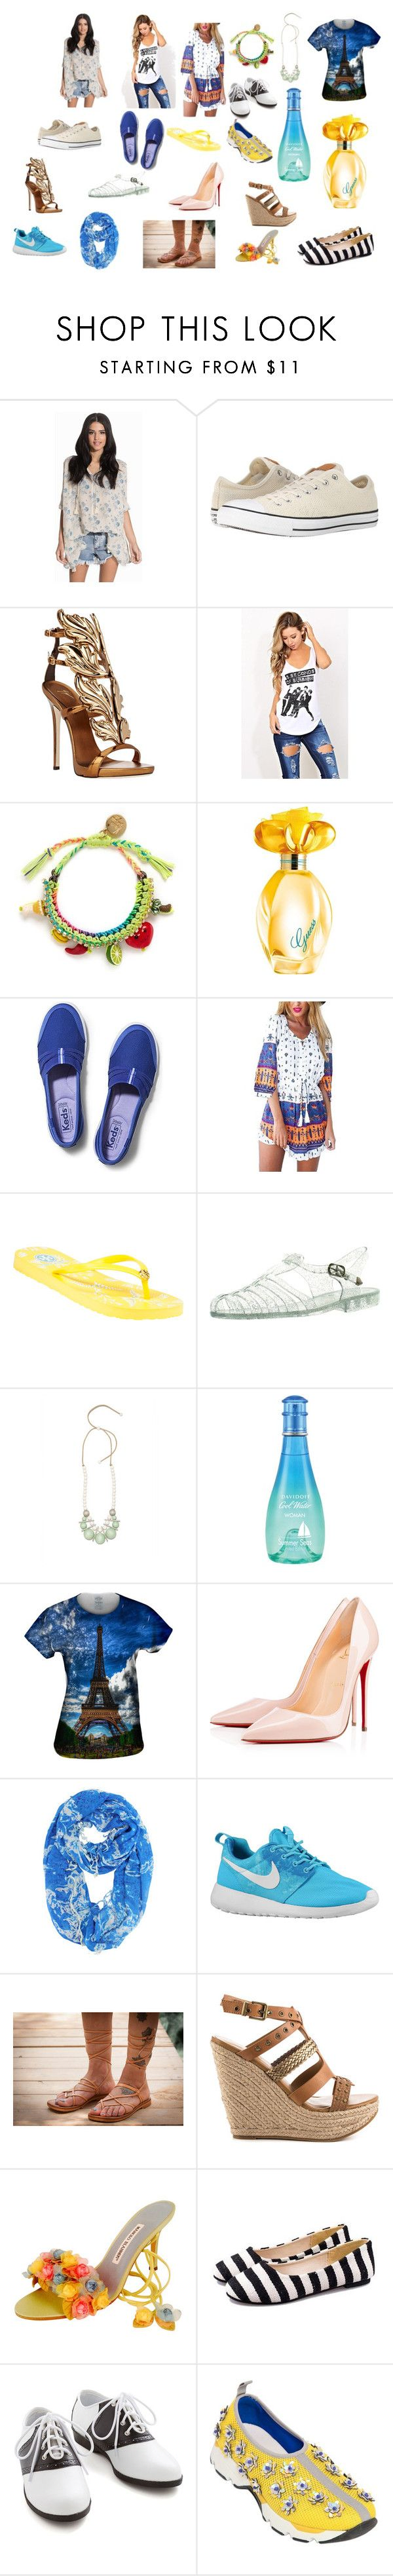 """Lucy Luco - New ladies summer style."" by exkniha on Polyvore featuring Denim & Supply by Ralph Lauren, Converse, Giuseppe Zanotti, Venessa Arizaga, GUESS, Keds, Tory Burch, Davidoff, Christian Louboutin and ALDO"